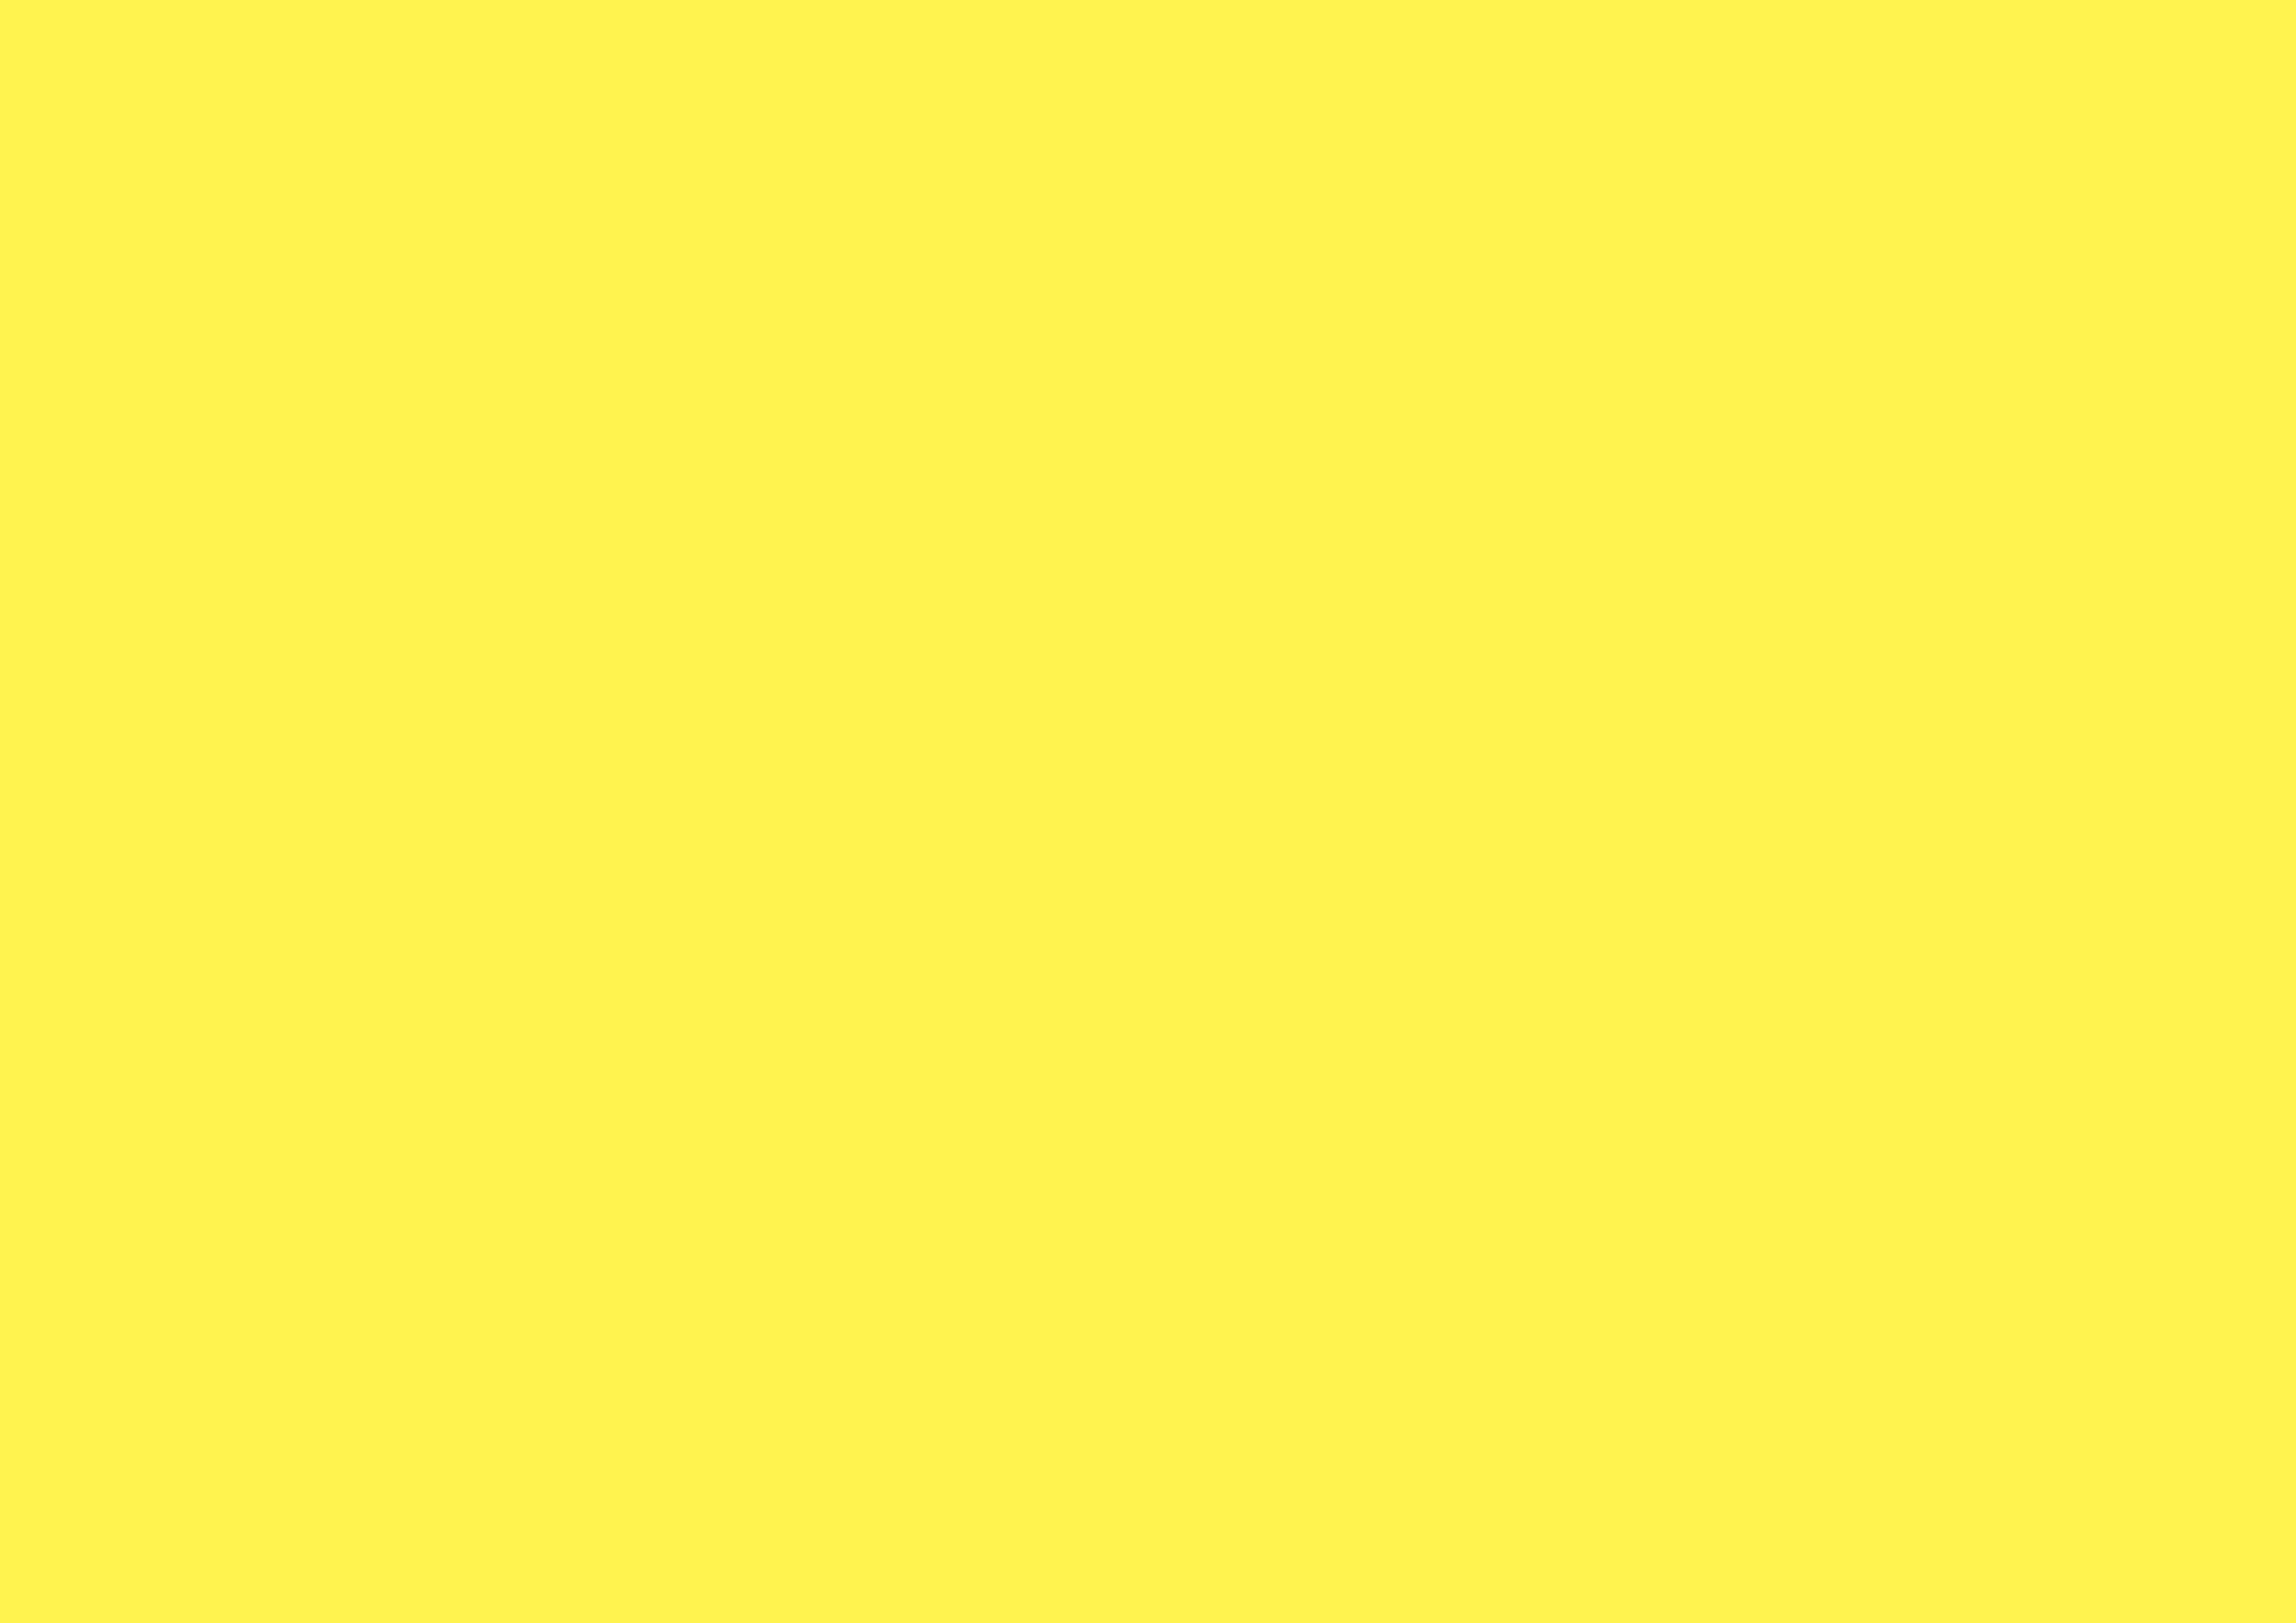 3508x2480 Lemon Yellow Solid Color Background